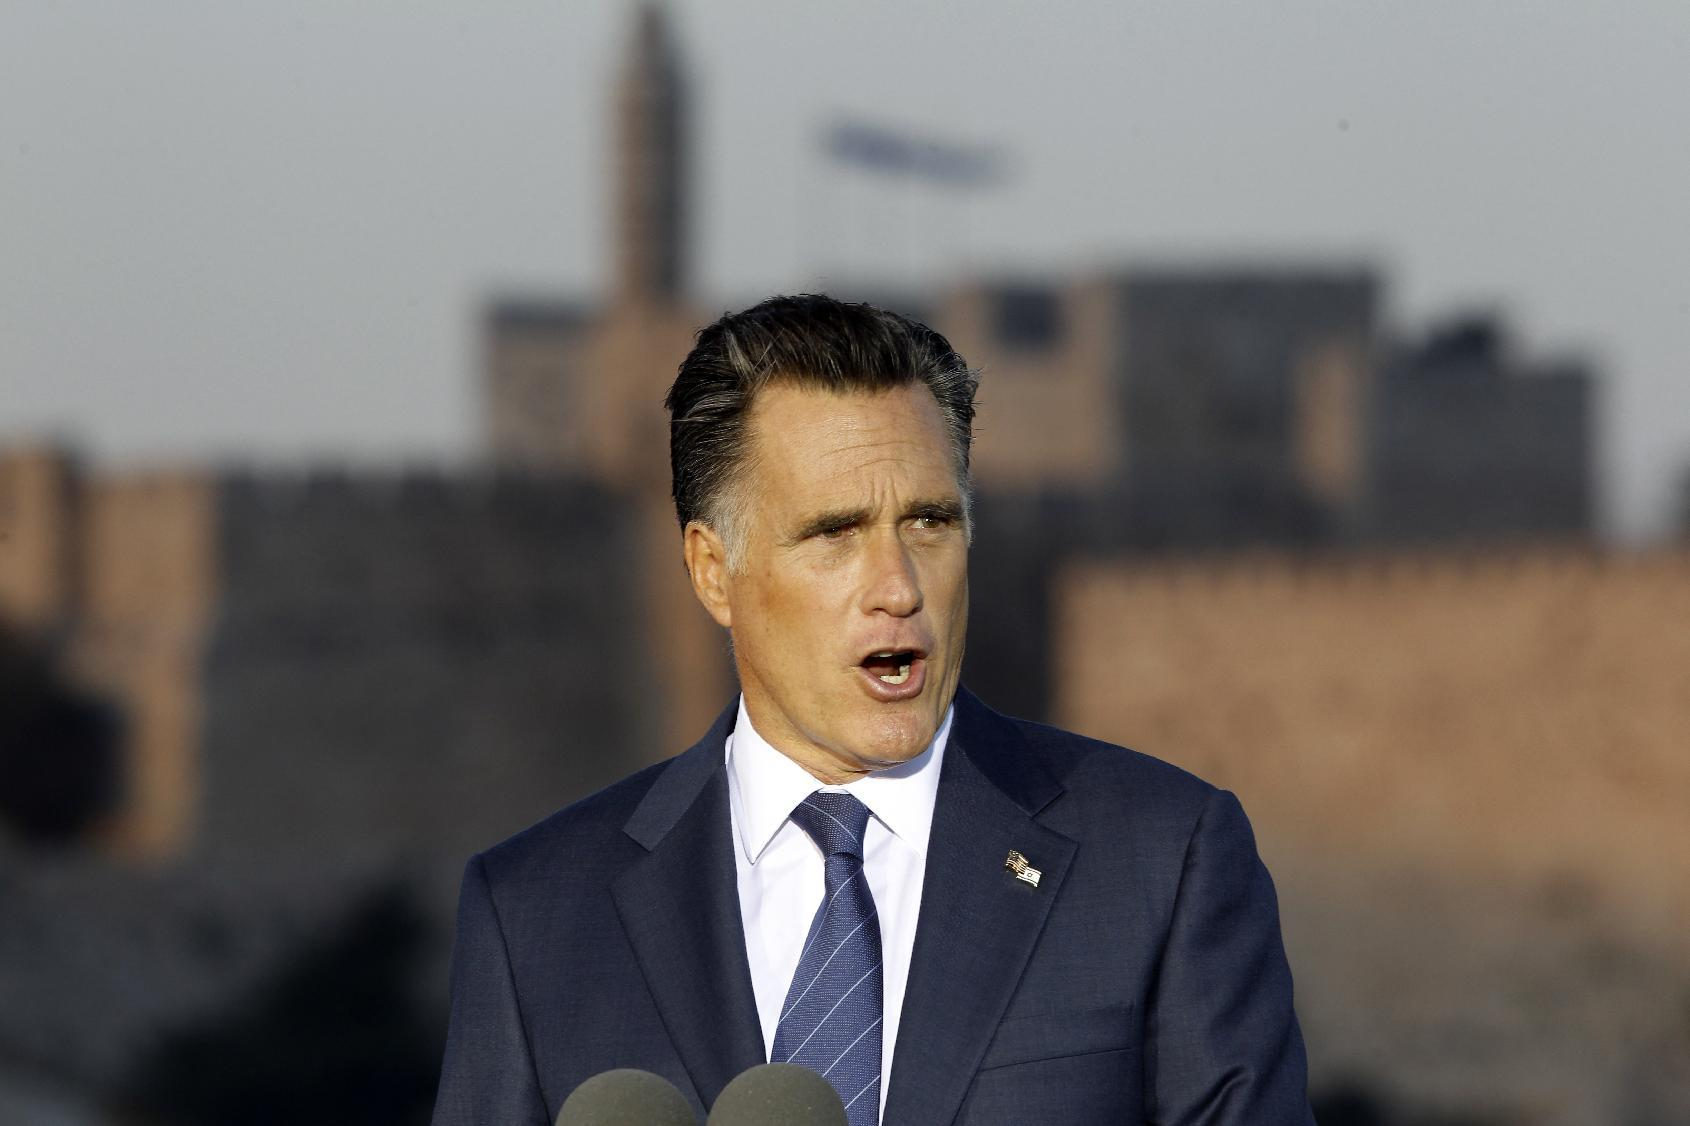 Republican presidential candidate and former Massachusetts Gov. Mitt Romney delivers a speech in Jerusalem, Sunday, July 29, 2012. (AP Photo/Charles Dharapak)